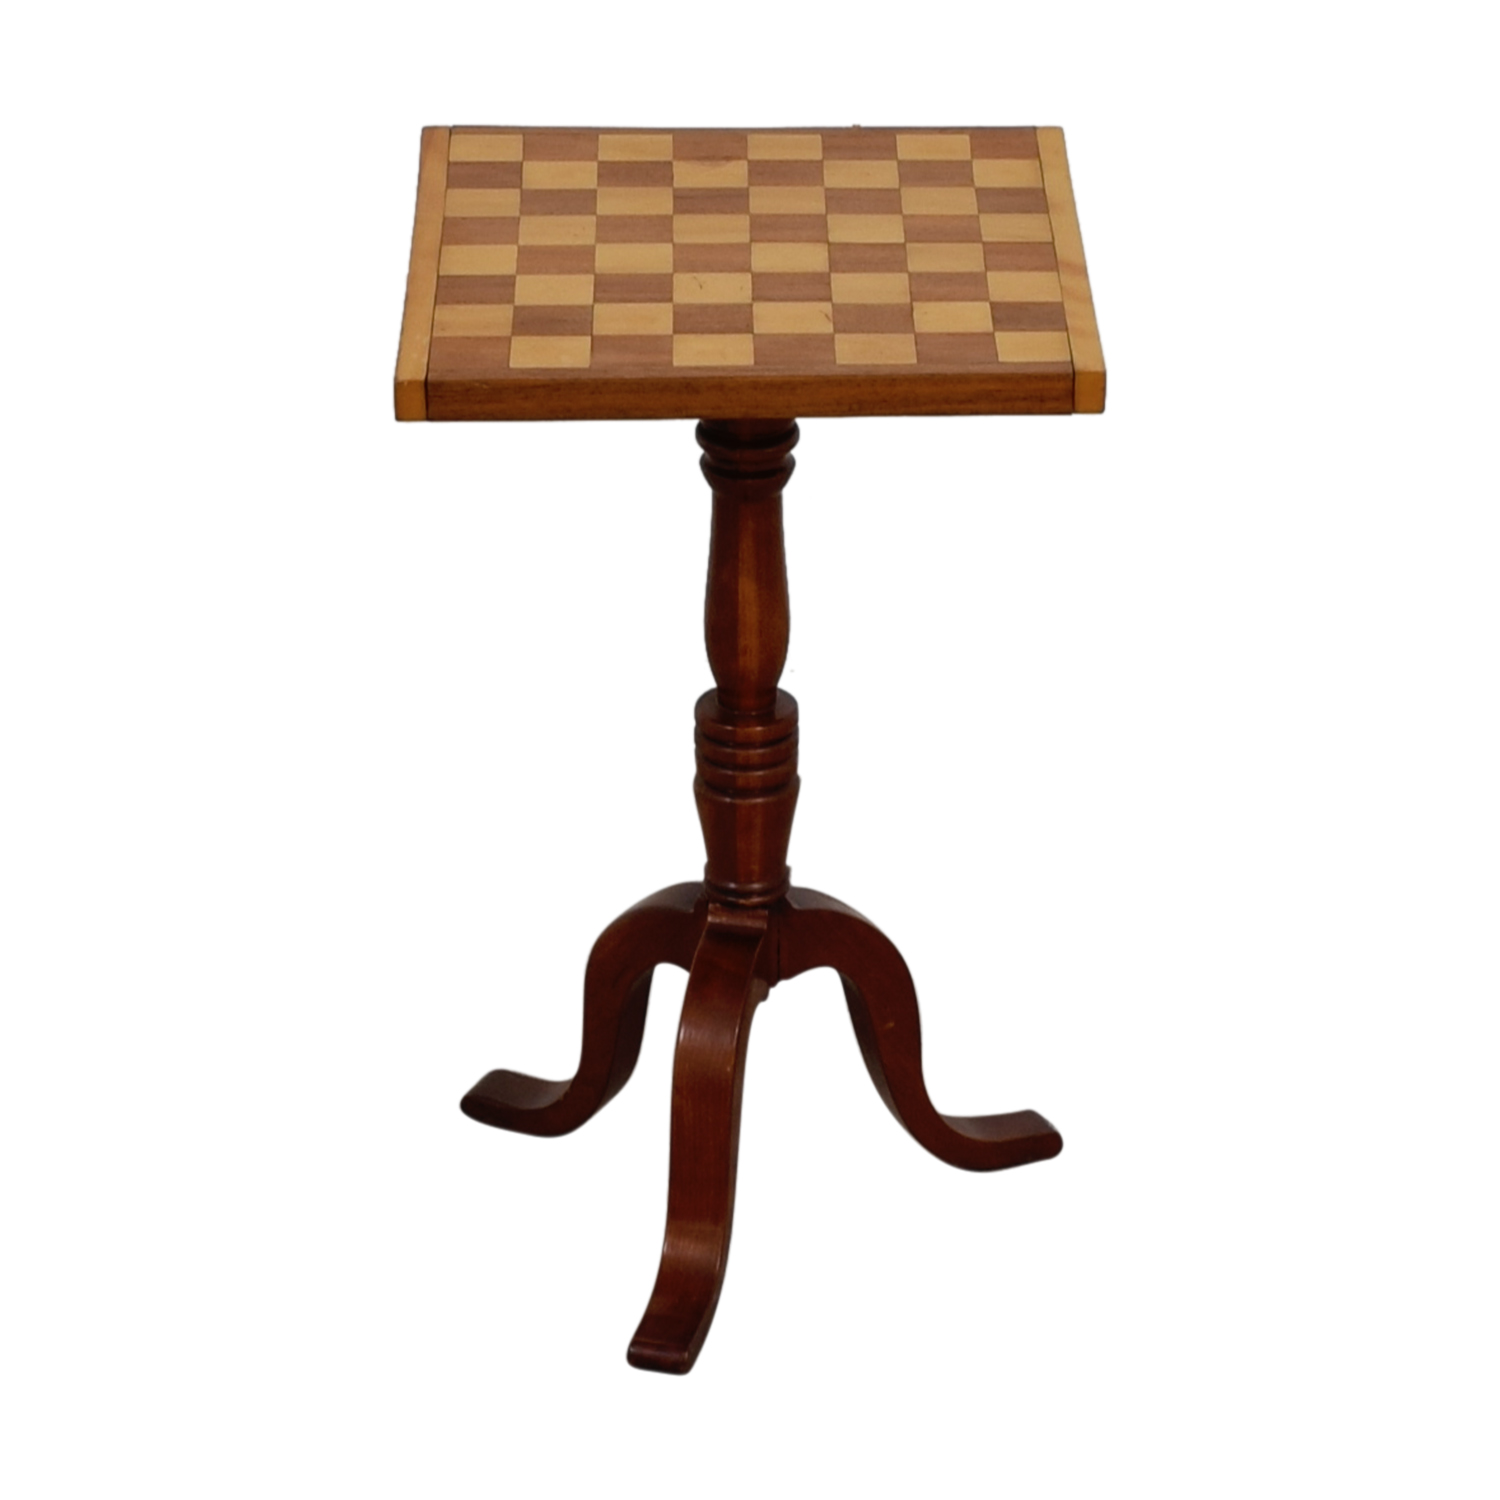 Custom Wood Chess Board Top End Table nyc